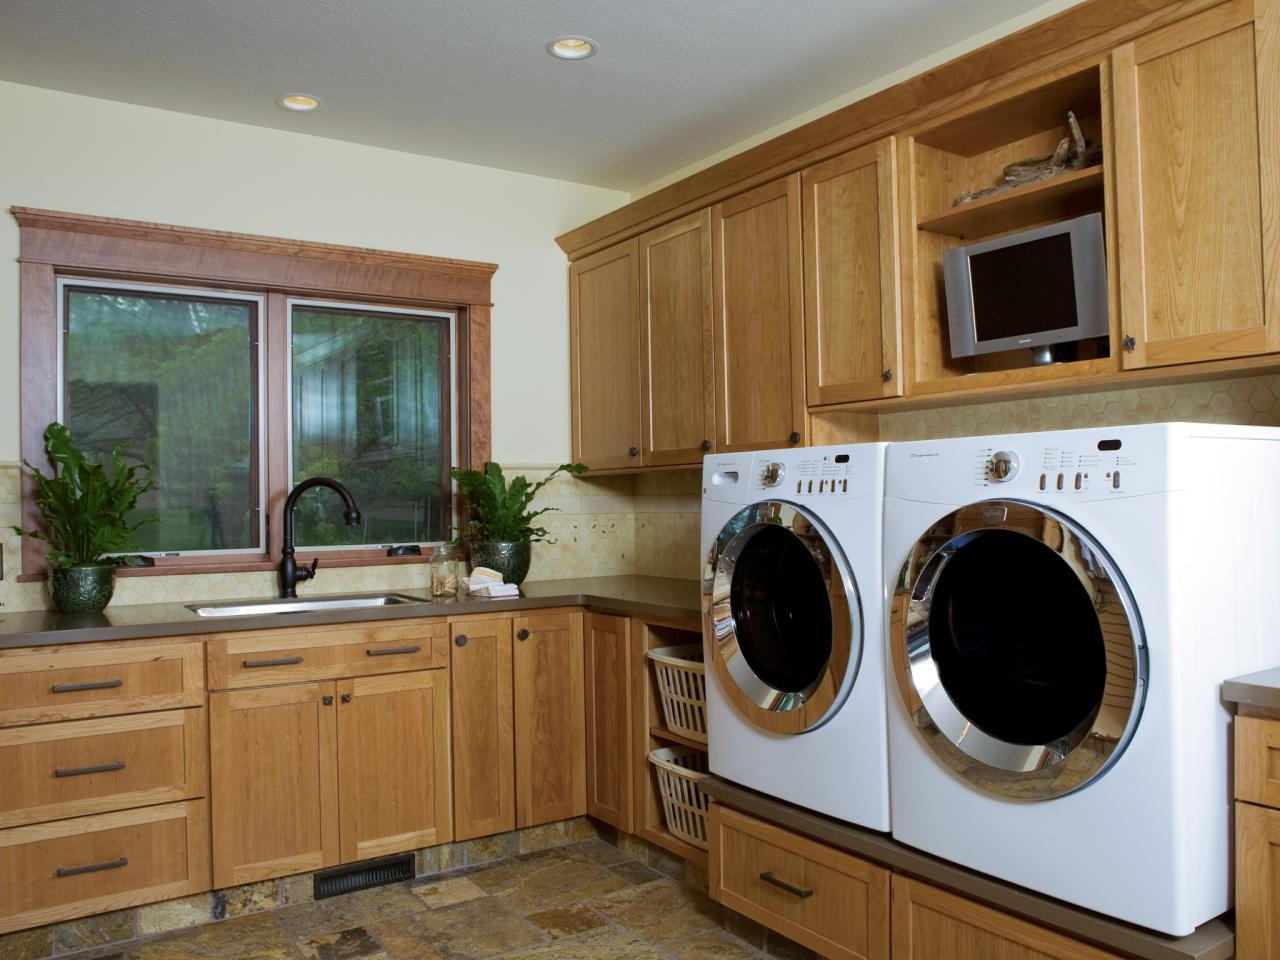 Things To Consider When Designing A Laundry Room on Laundry Room Cabinets Ideas  id=88878